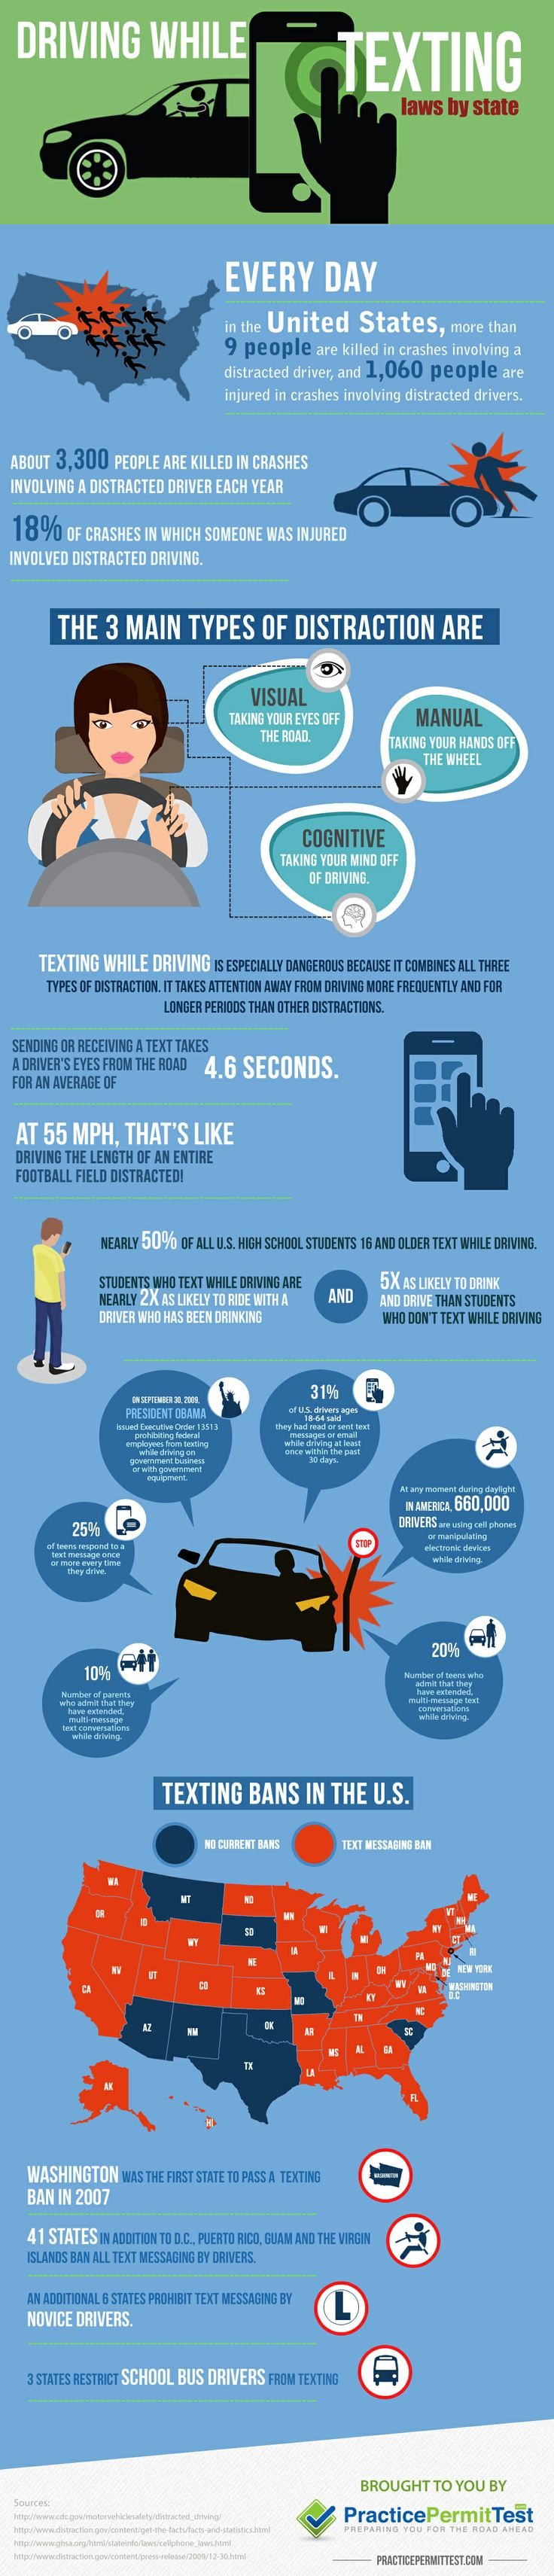 Driving While Texting Laws By State